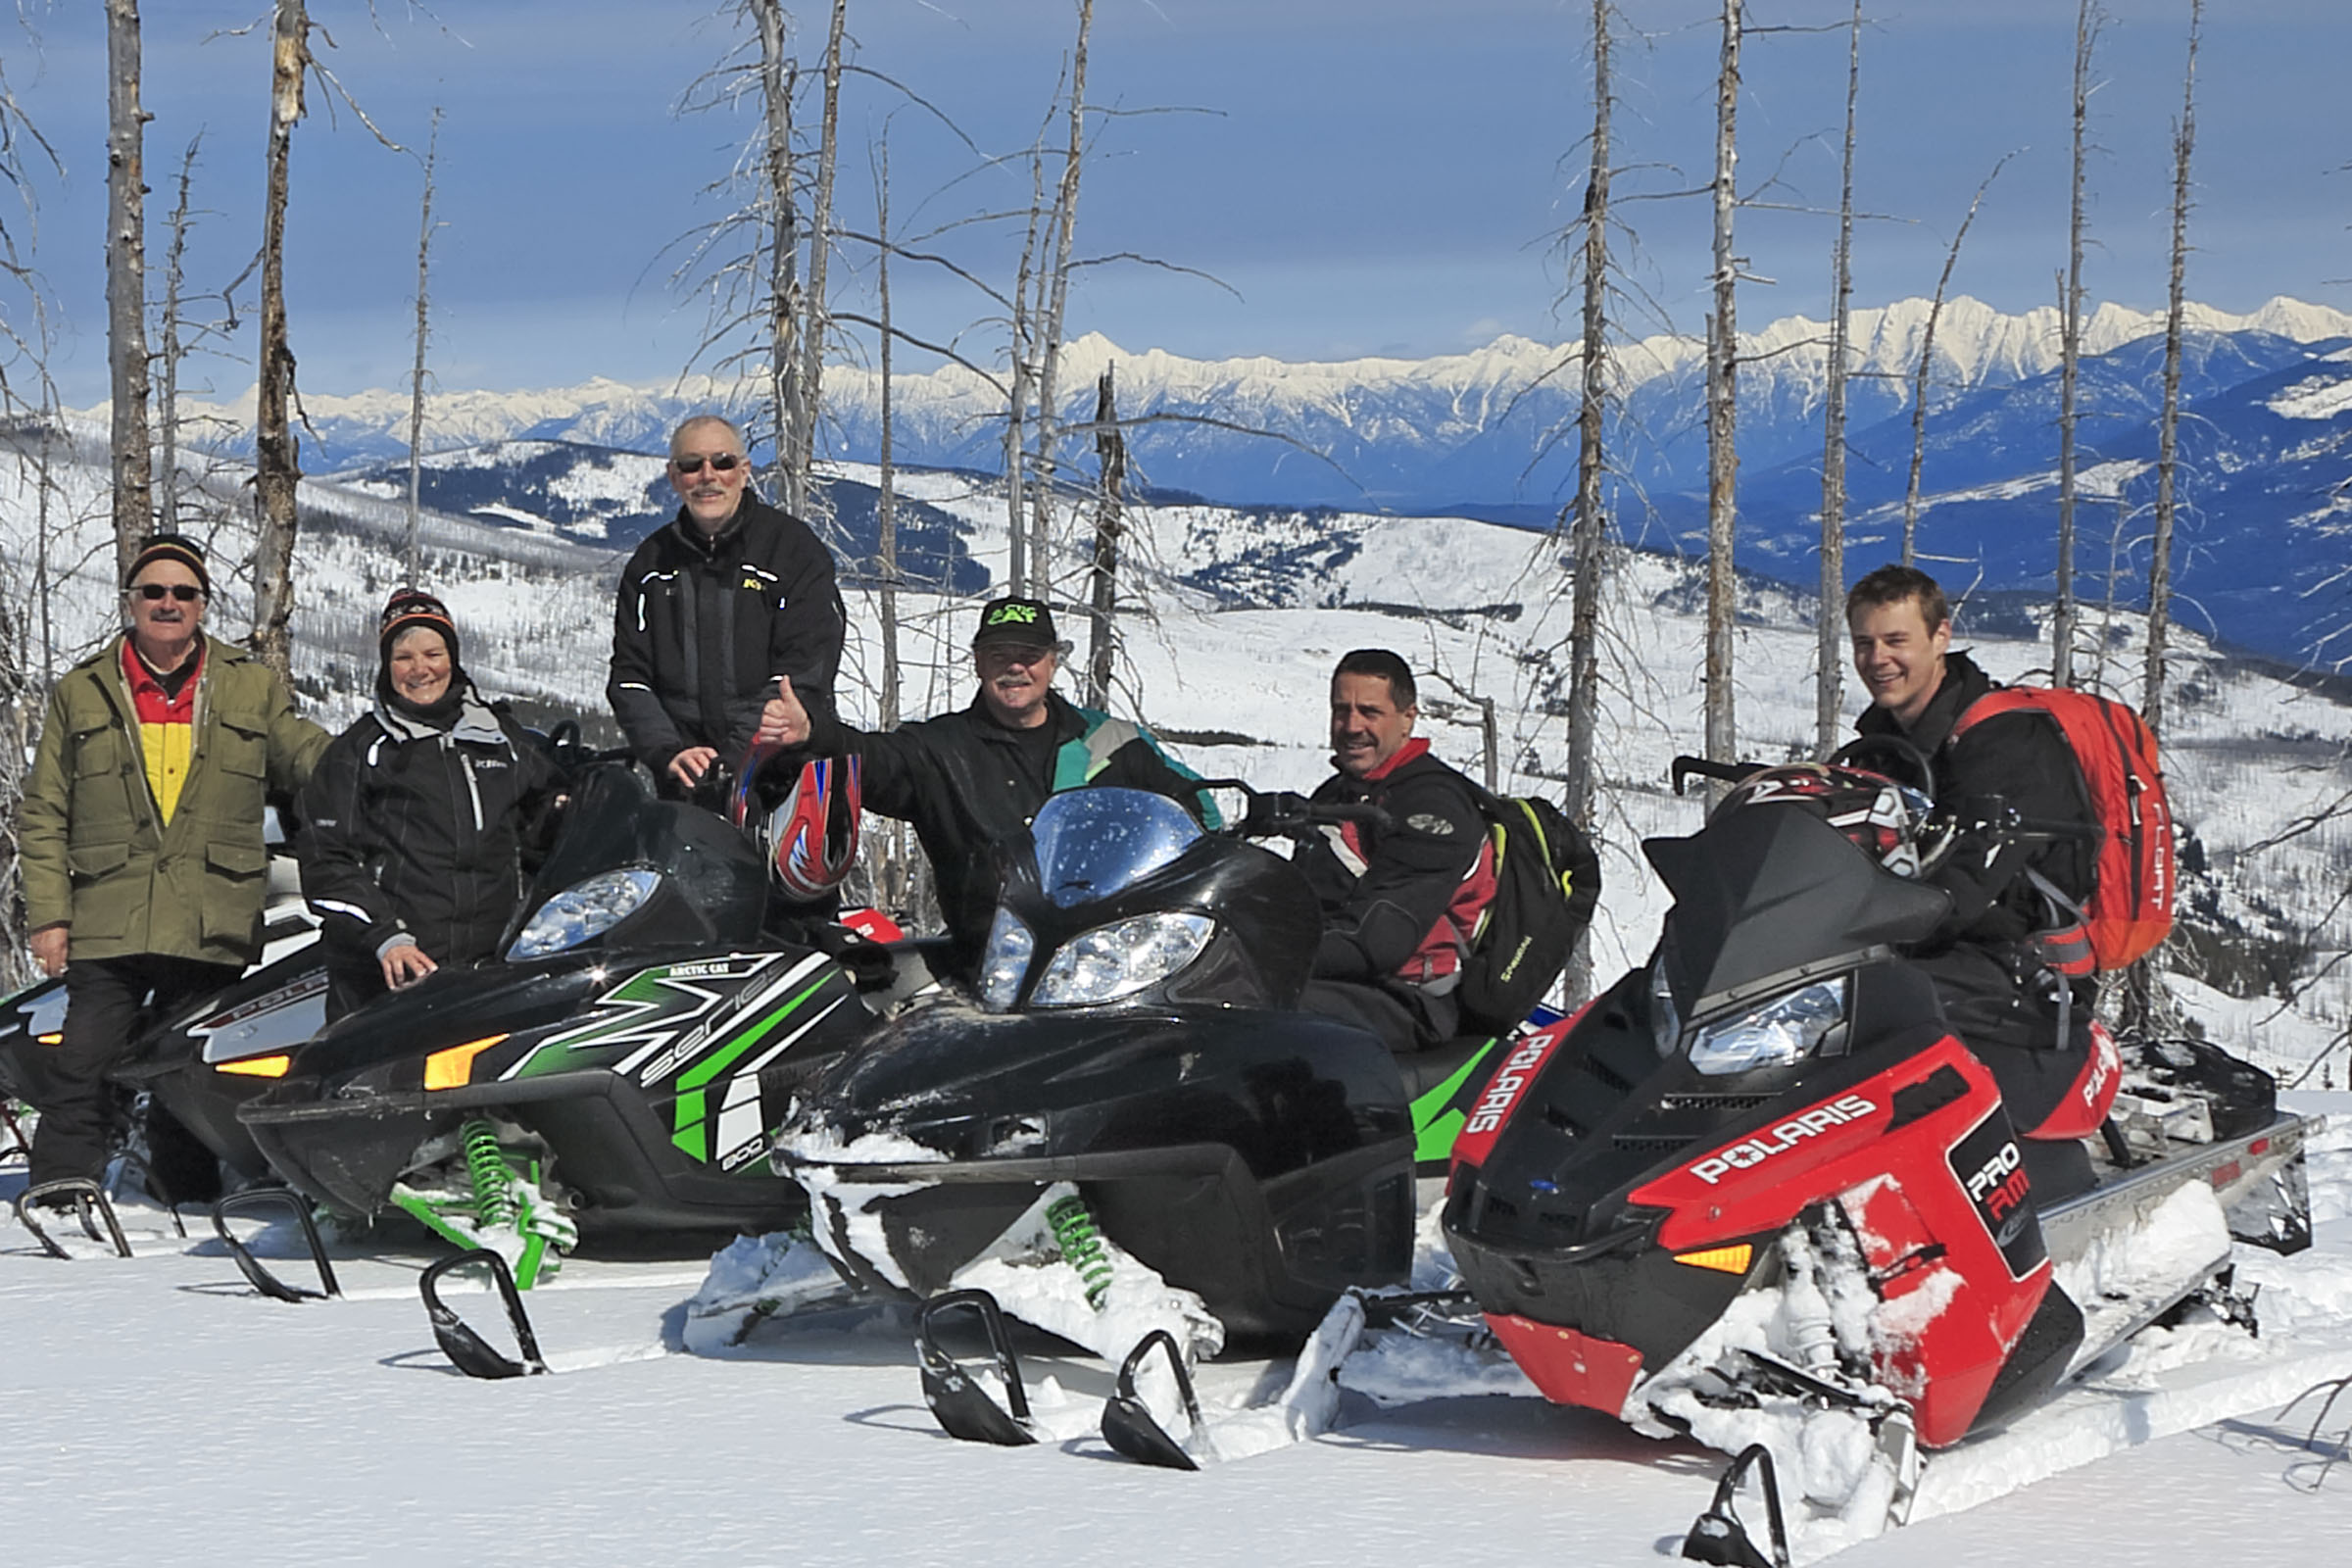 A group of sledders with the Steeples mountain range and Fisher Peak behind them.